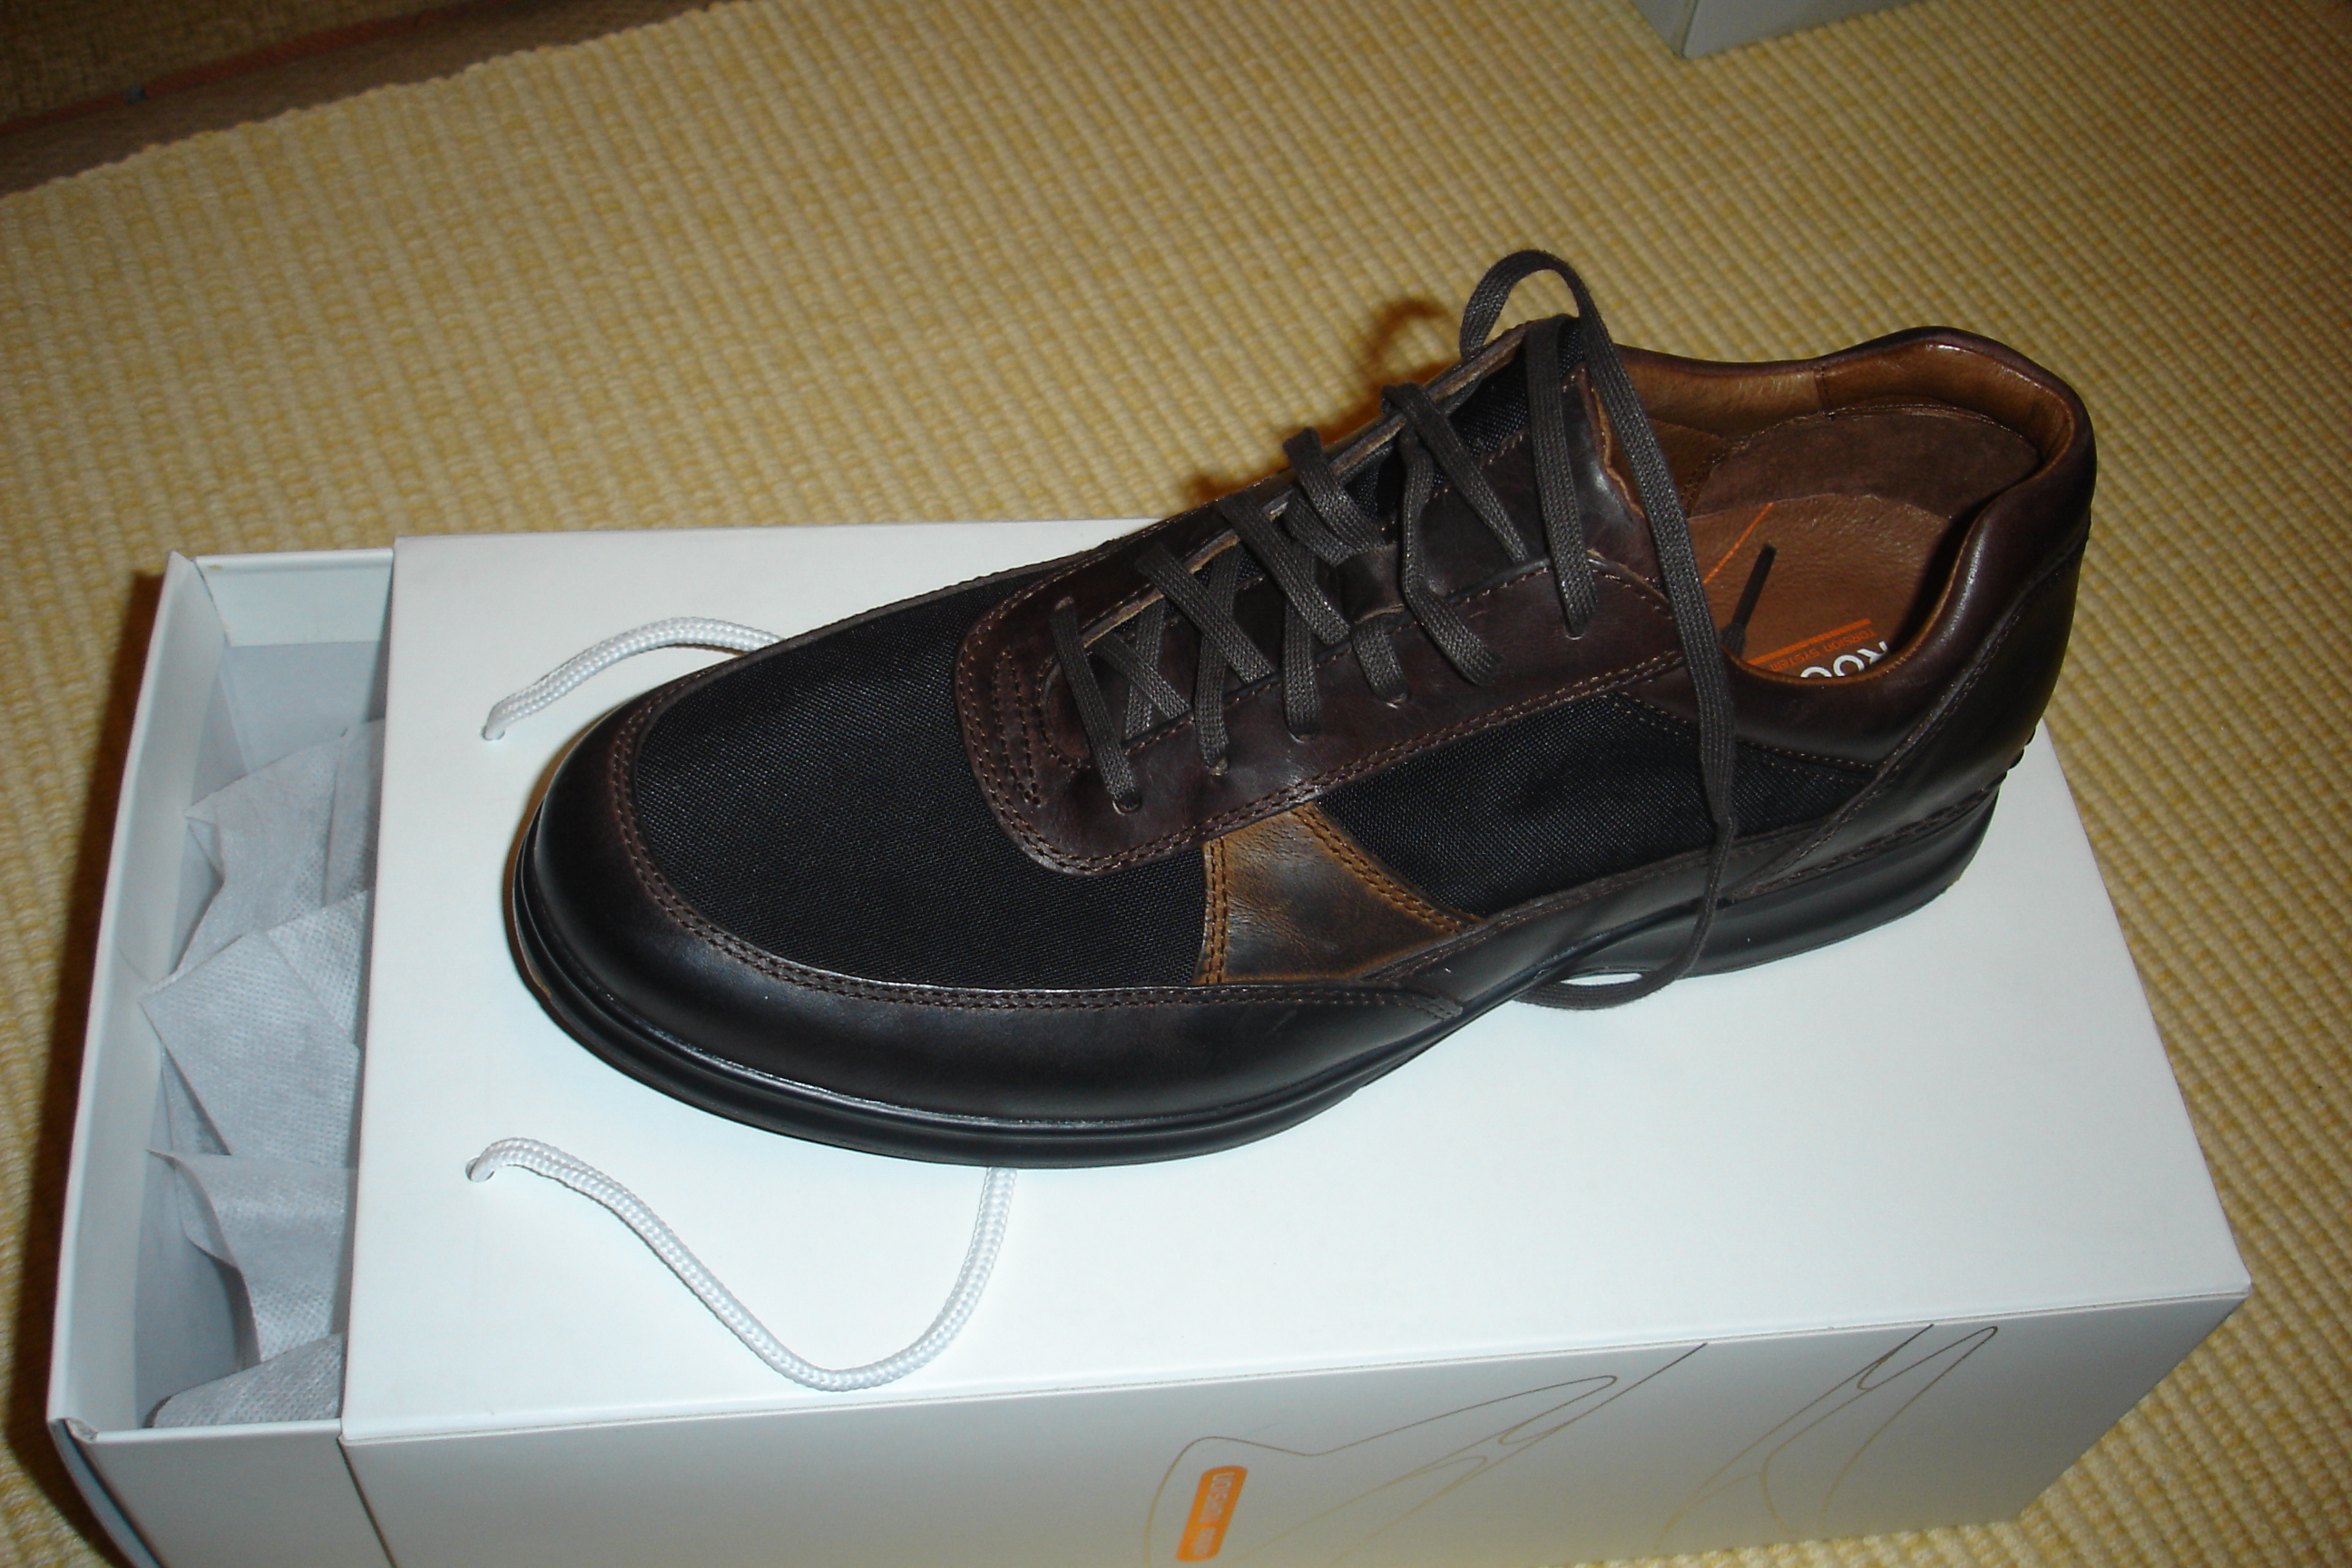 File:Rockport Metro Edge brown men shoes.jpg